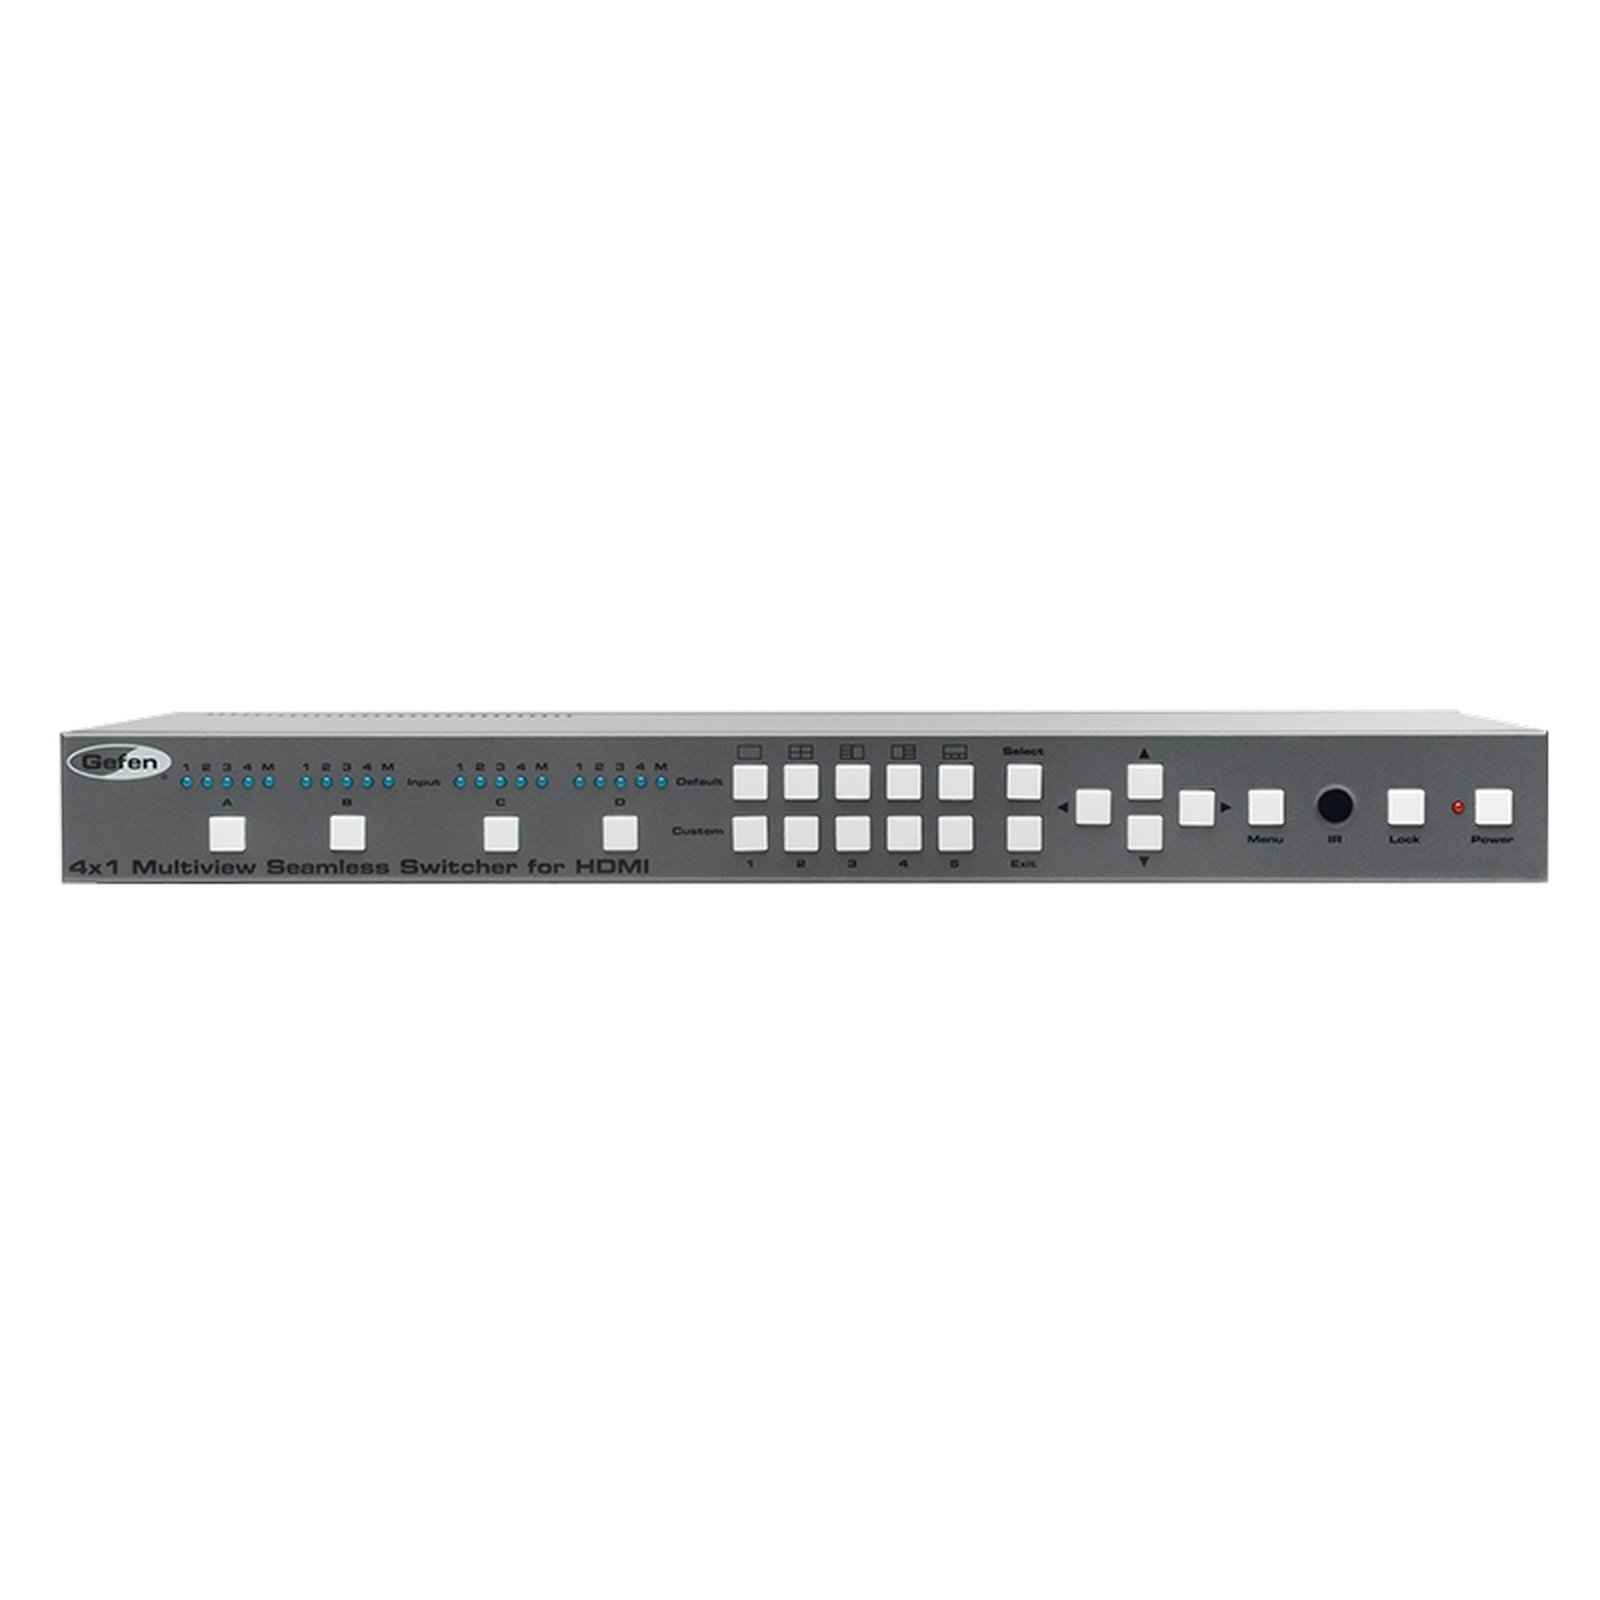 Gefen EXT-HD-MVSL-441 | Multiview Seamless Switcher